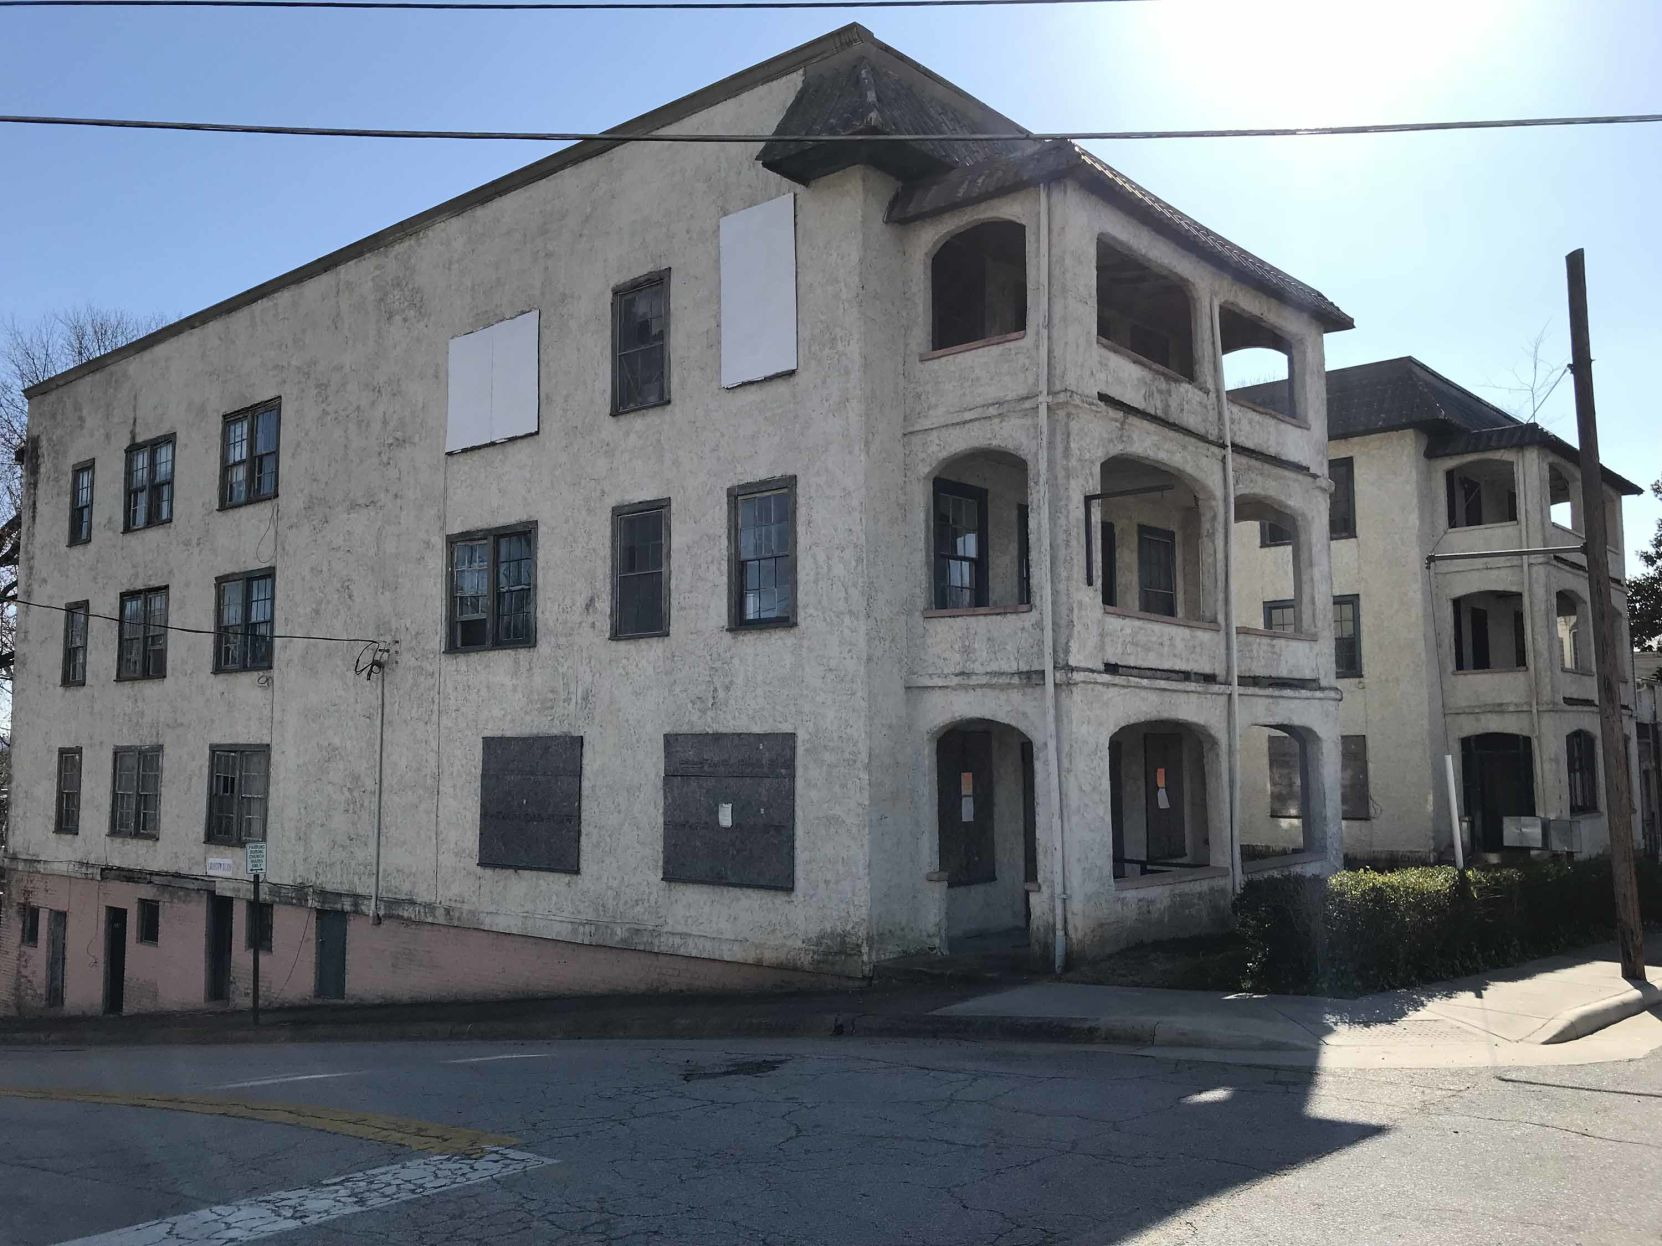 Beau Danville Weighs Buying Blighted Apartment Building